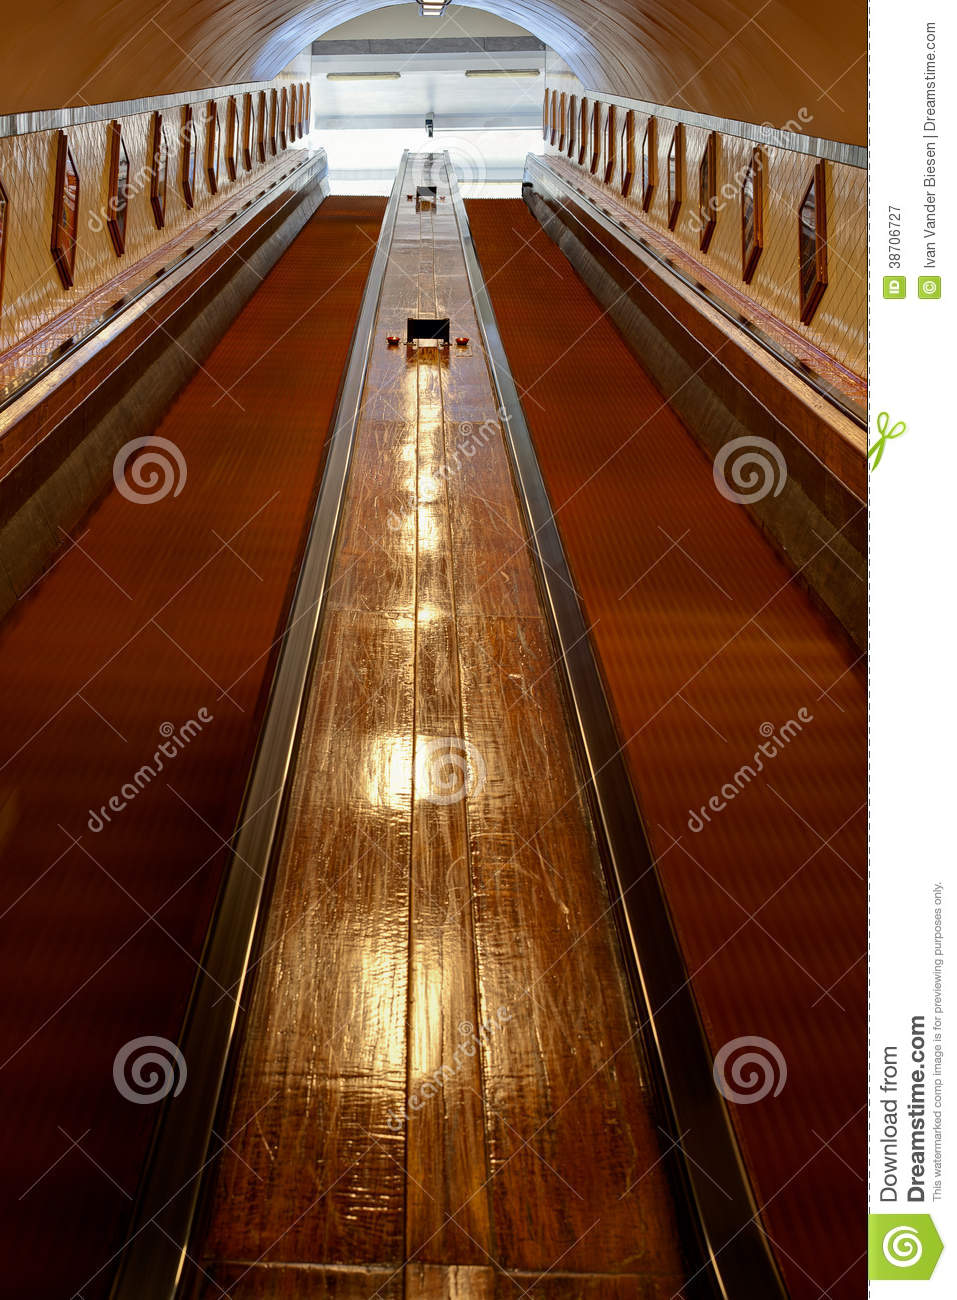 Antique Escalator Or Moving Staircase Royalty Free Stock